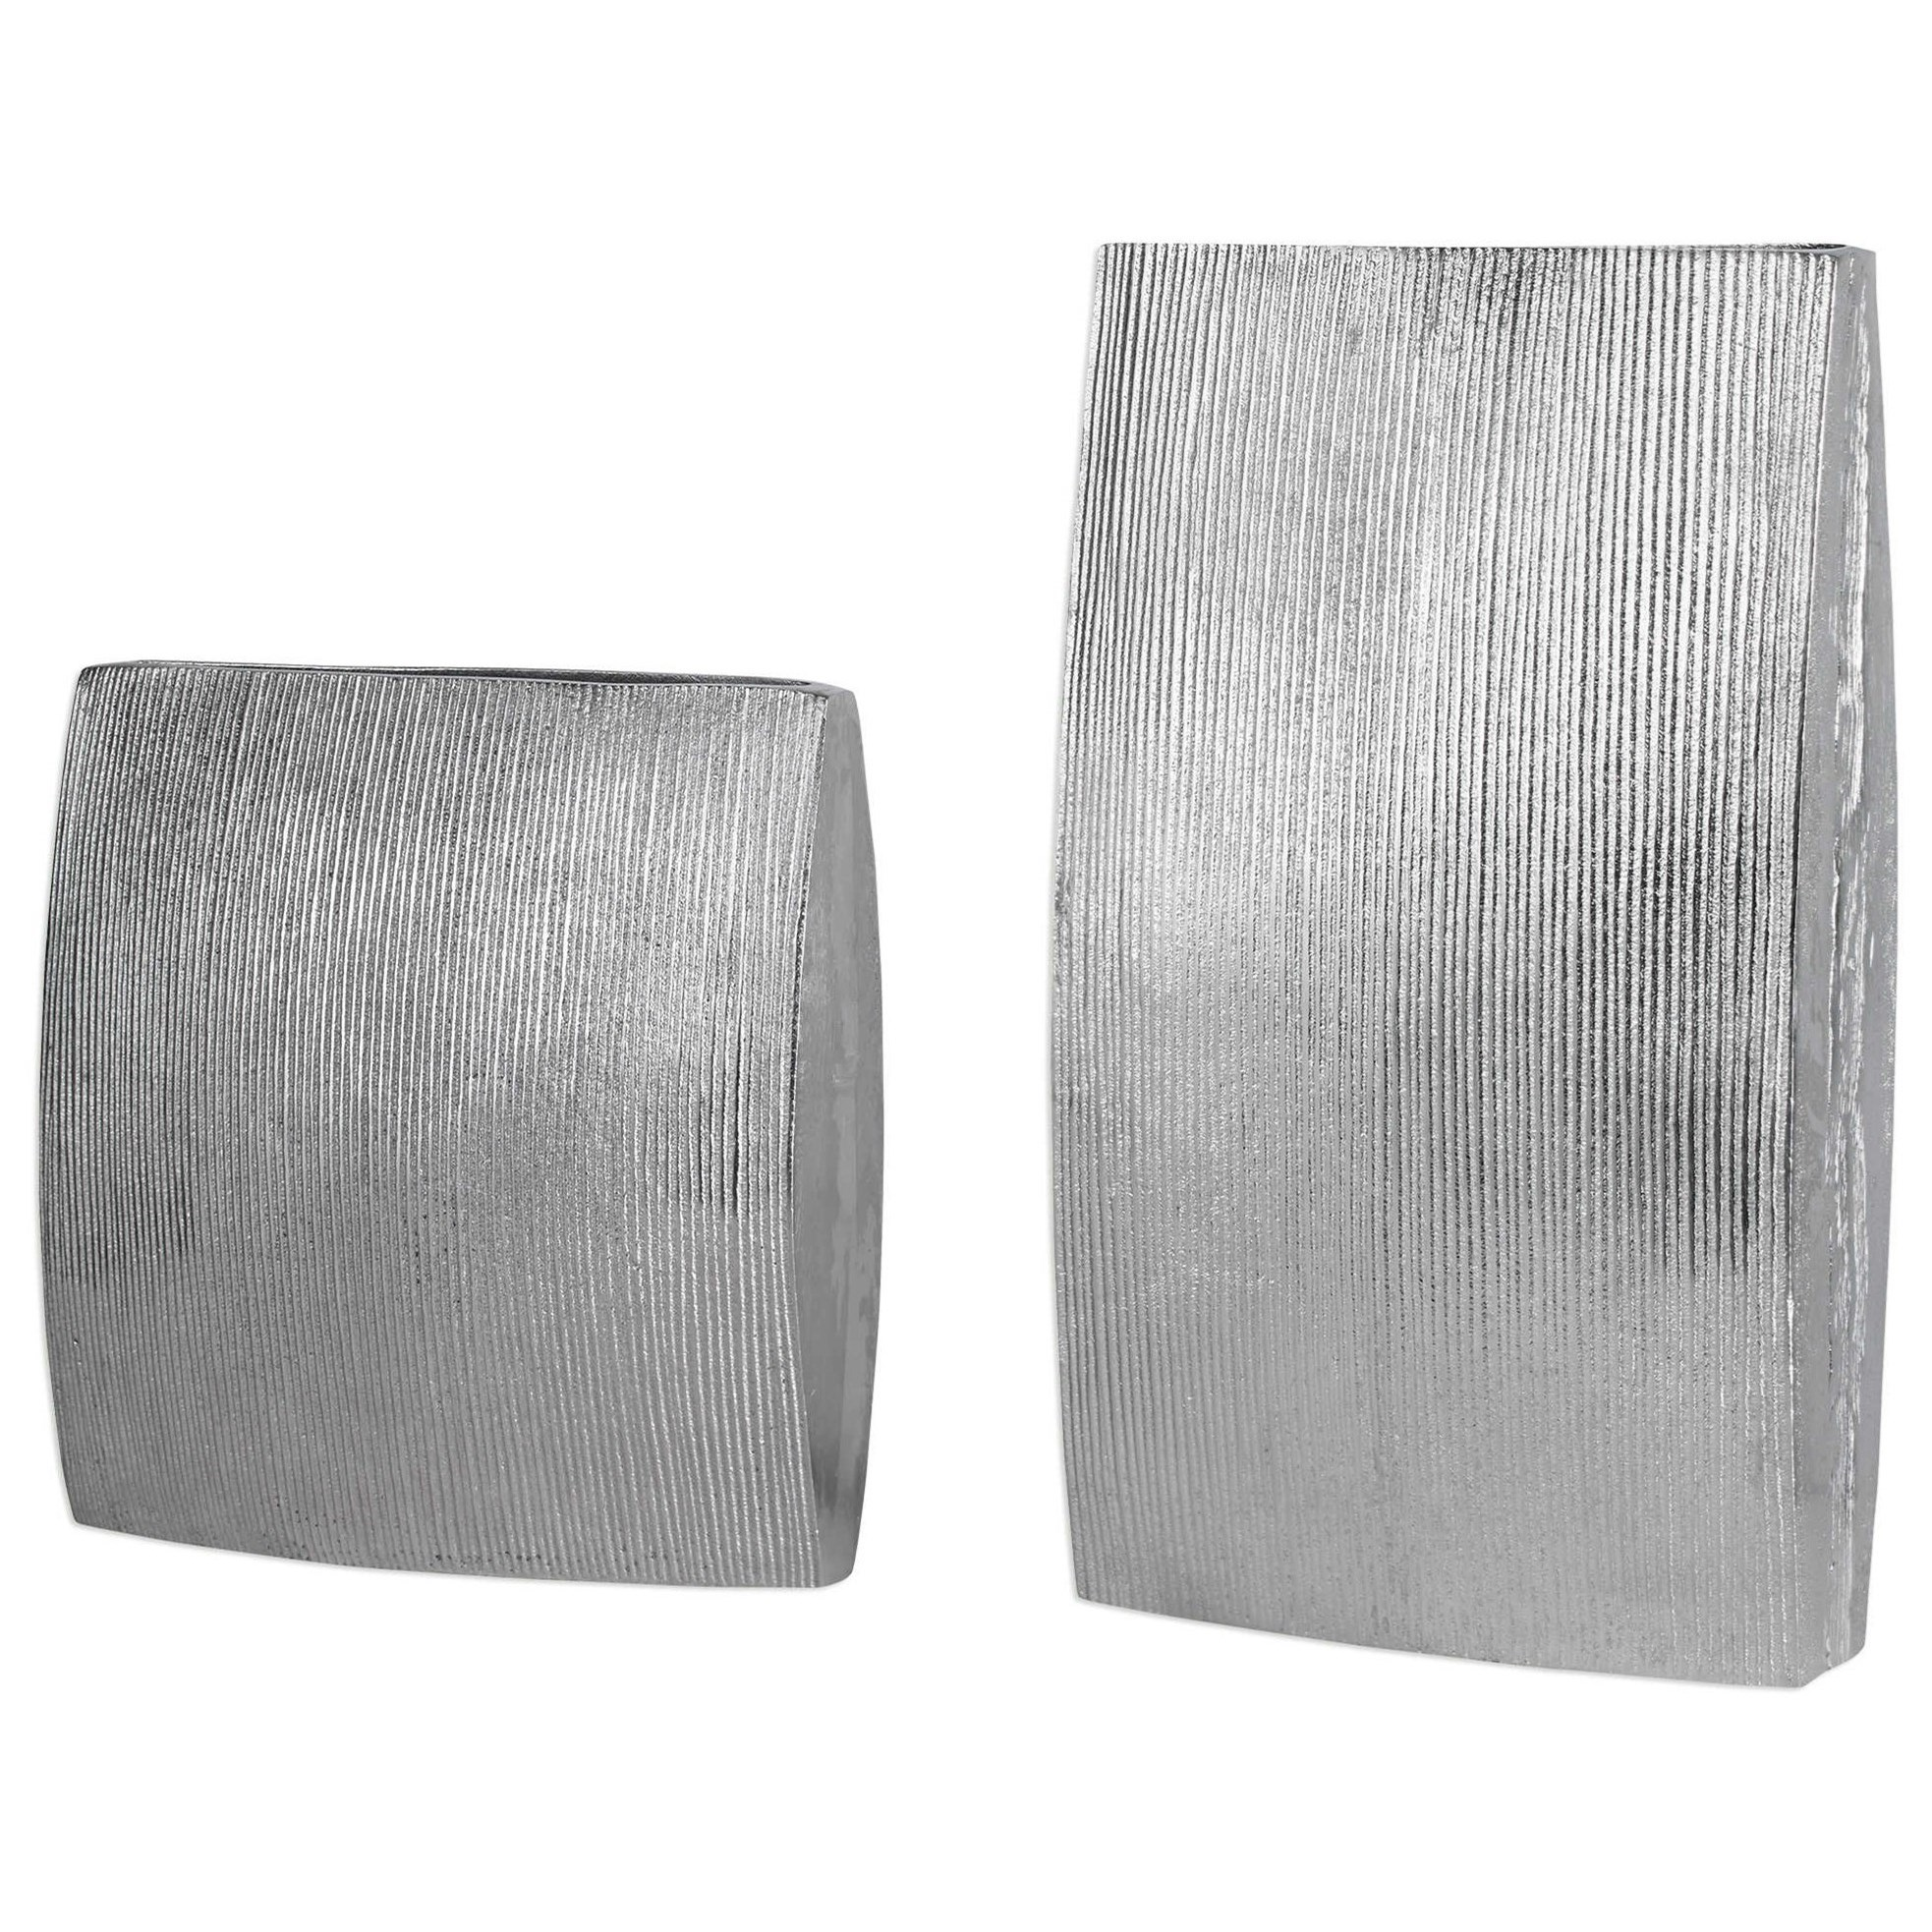 Accessories - Vases and Urns Darla Aluminum Vases (Set of 2) by Uttermost at Mueller Furniture